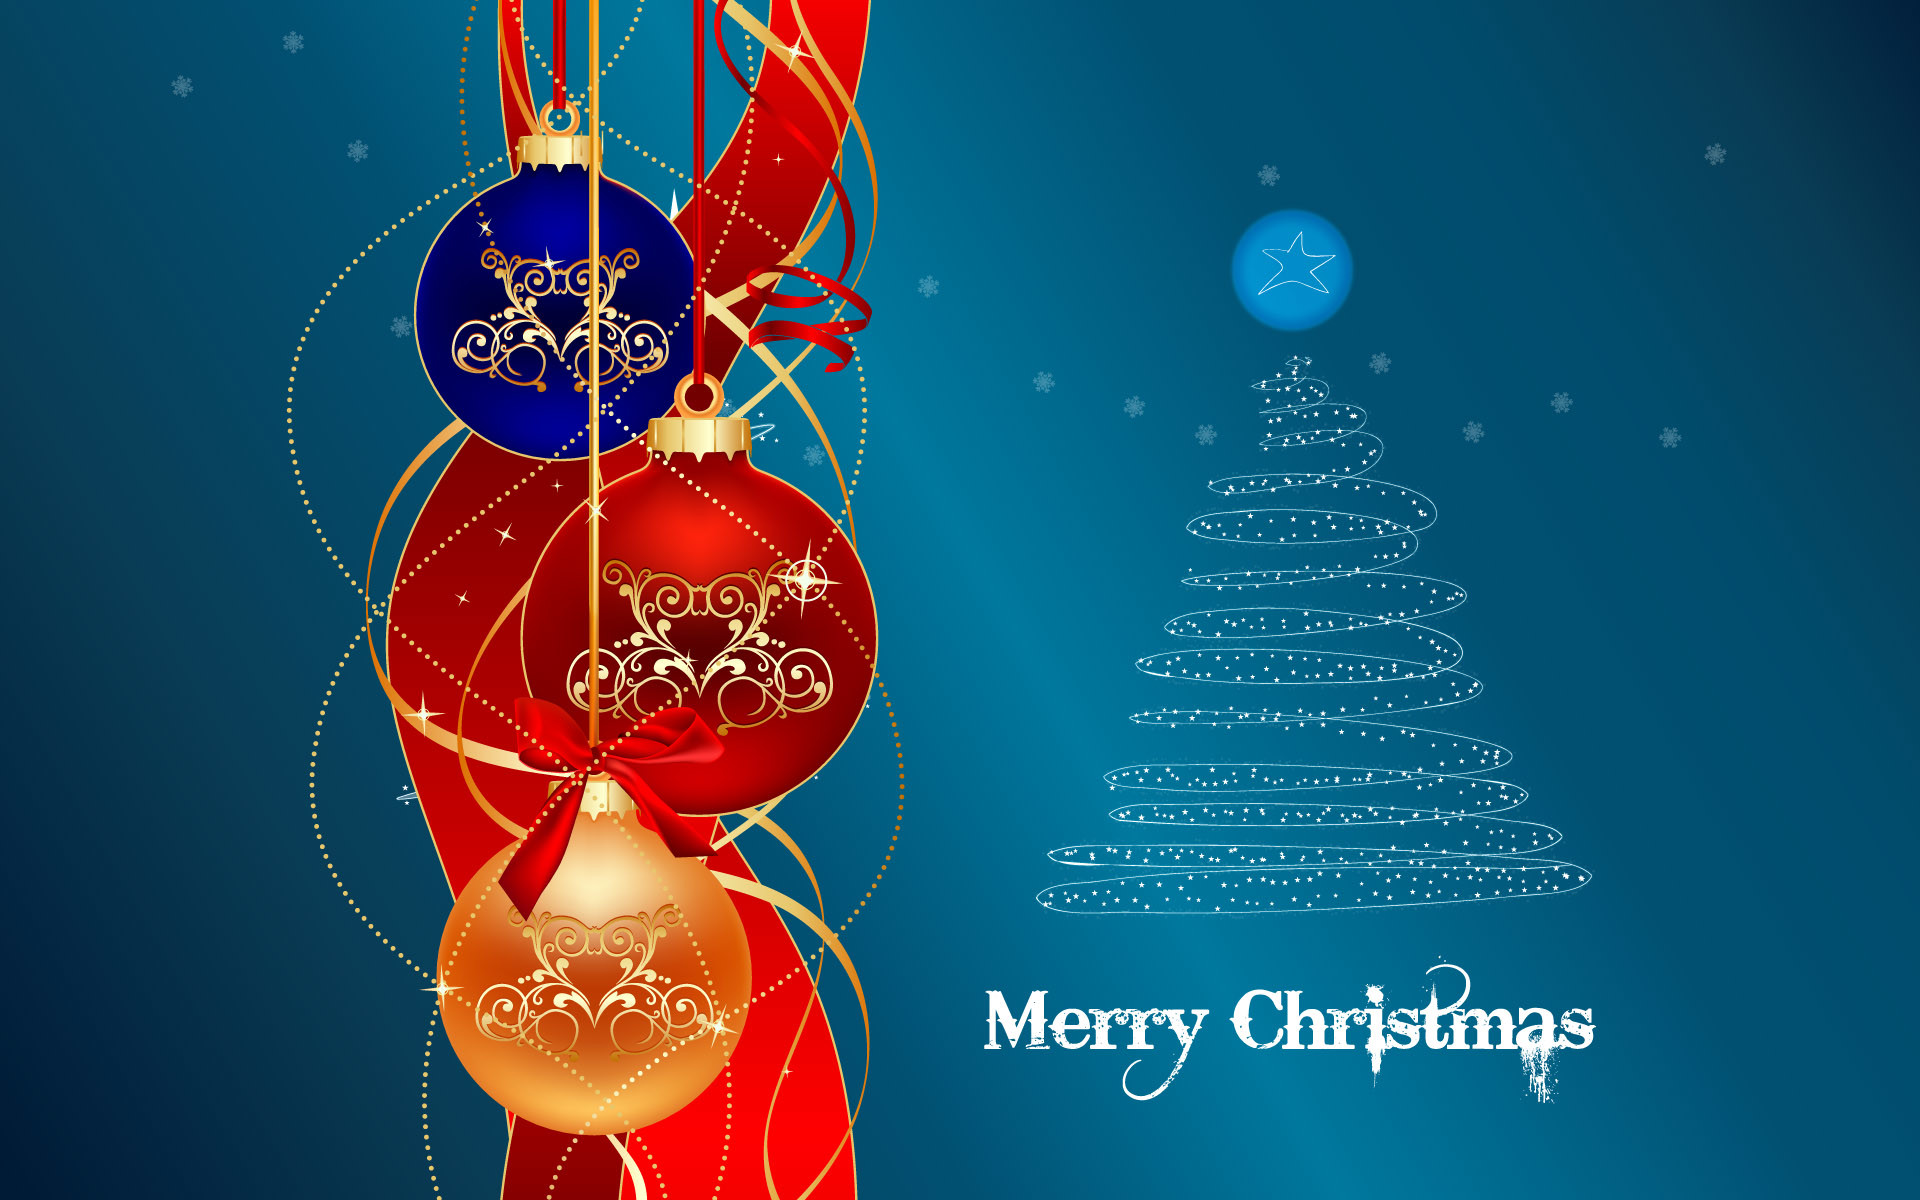 Merry christmas happy new year animated wallpaper